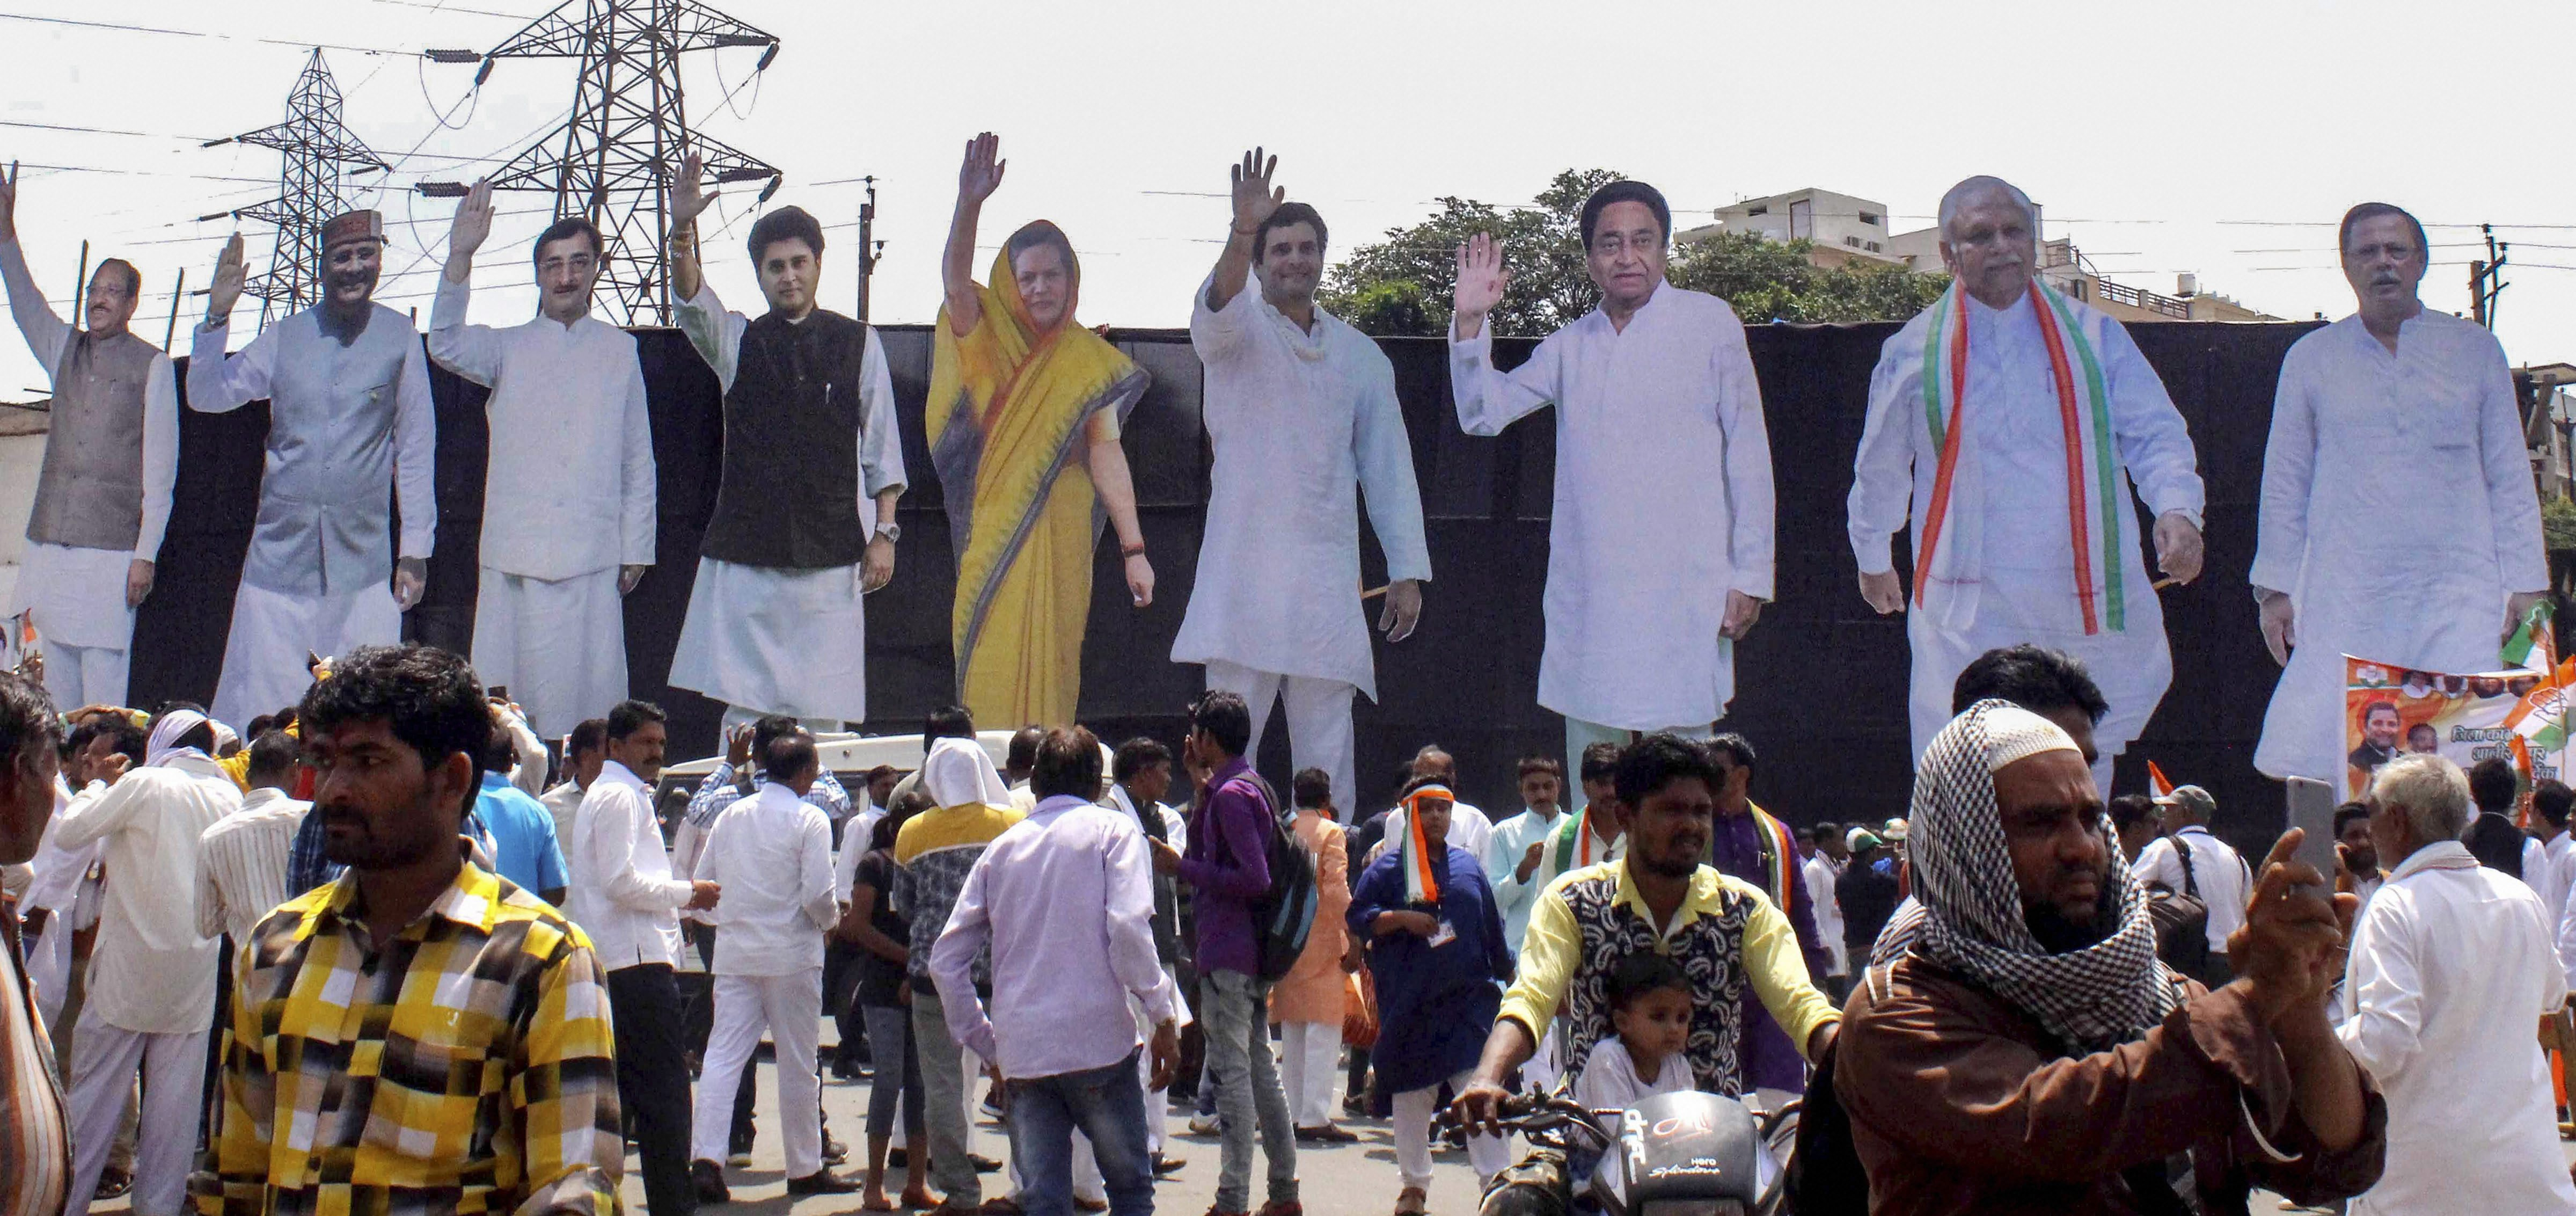 Larger than life cut-outs of Congress party leaders displayed during Congress President Rahul Gandhi's roadshow, in Bhopal - PTI